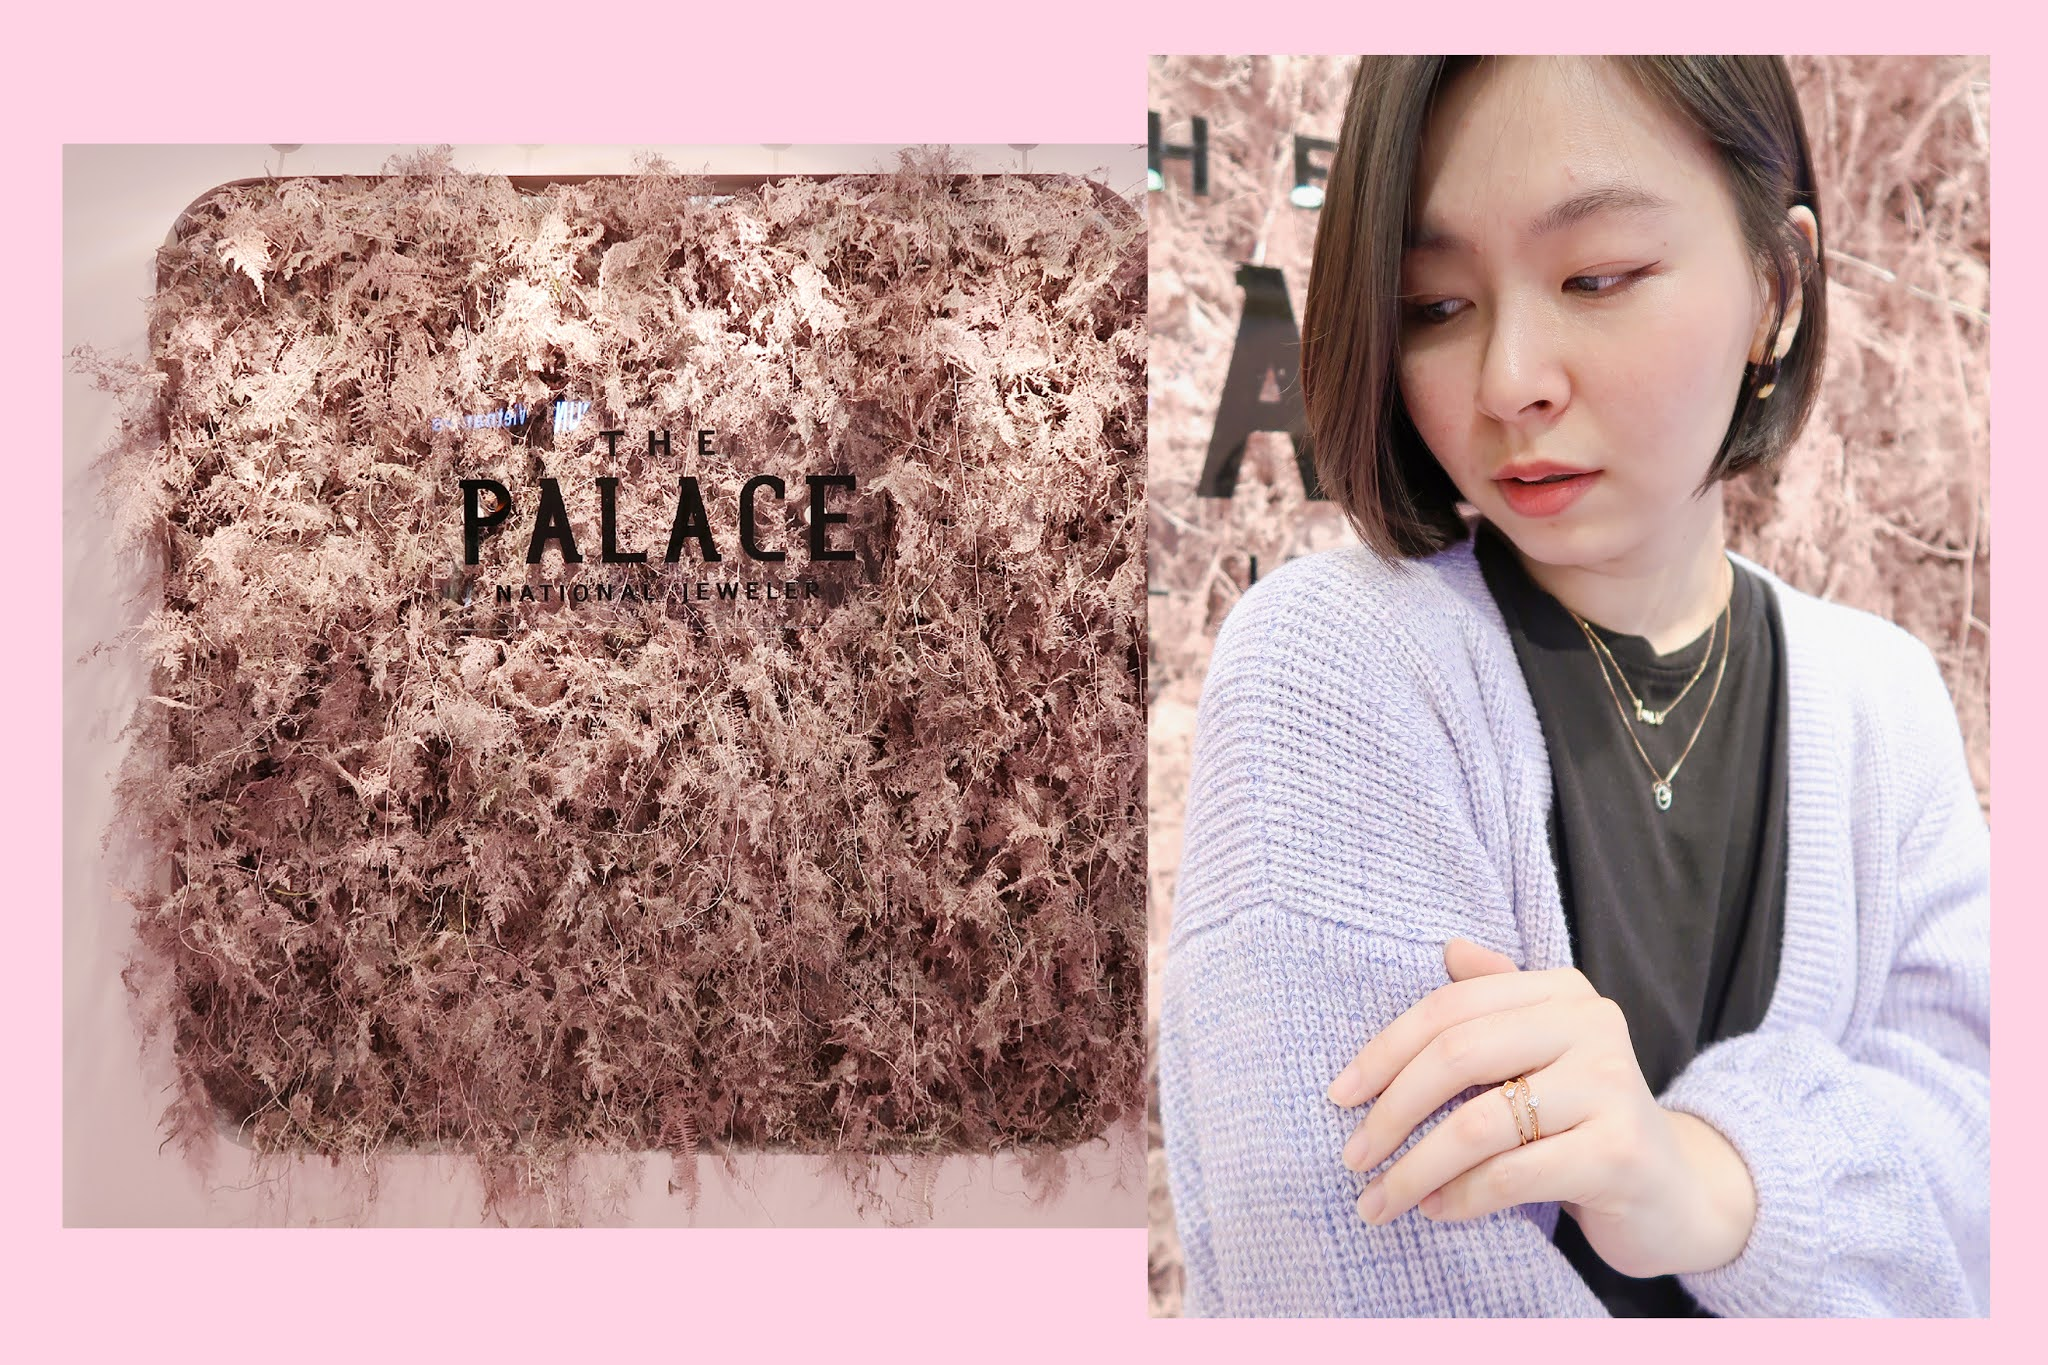 THE PALACE MOELA COLLECTION EMAS BERLIAN